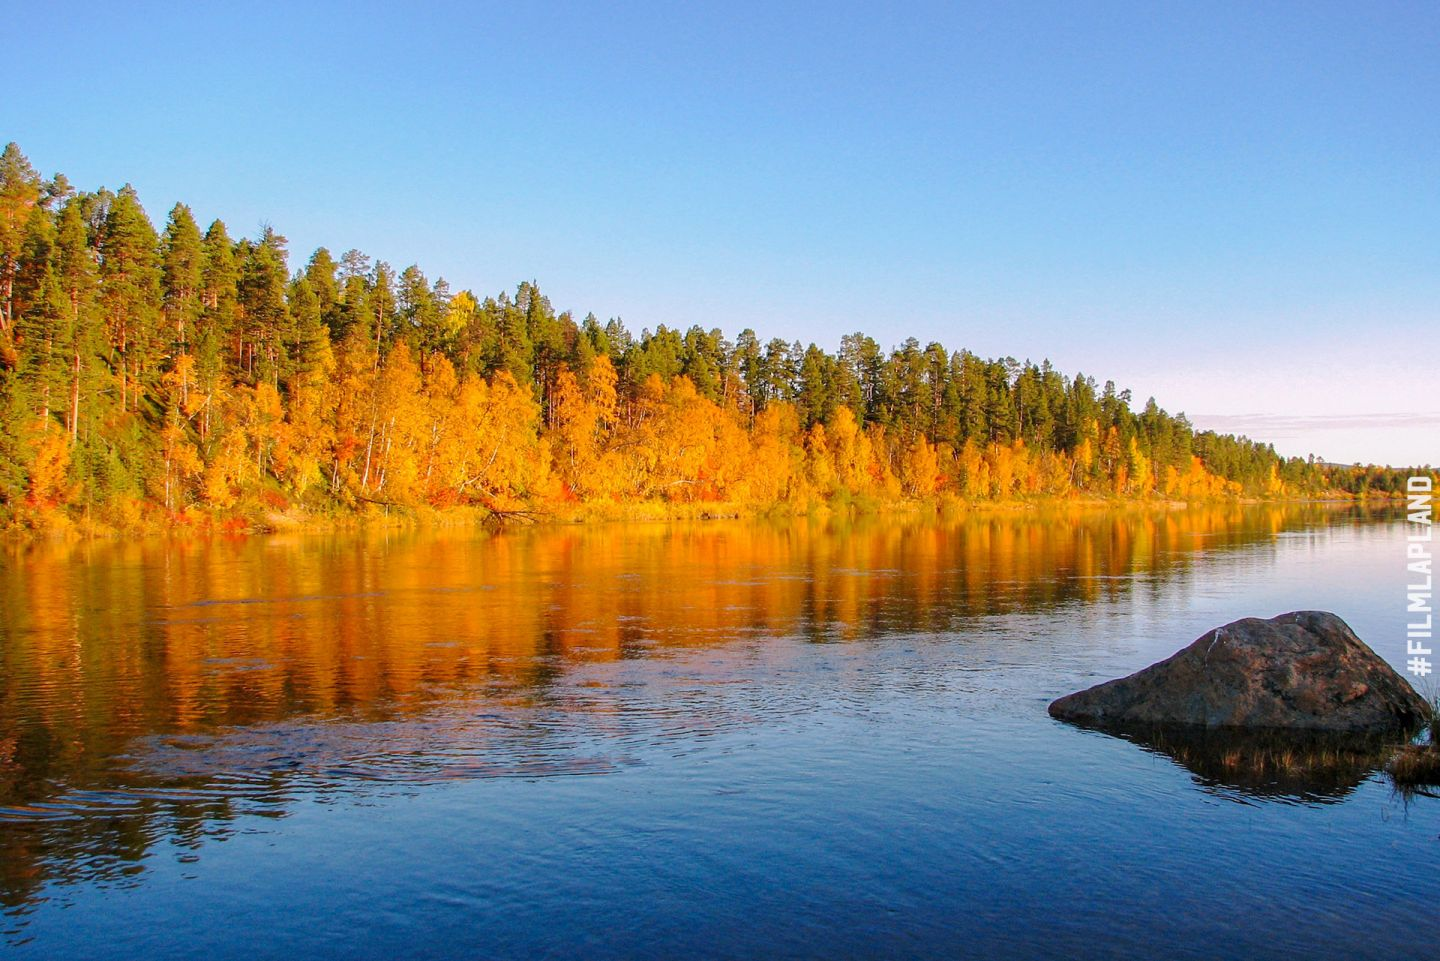 River and forest in Inari, Finland in autumn